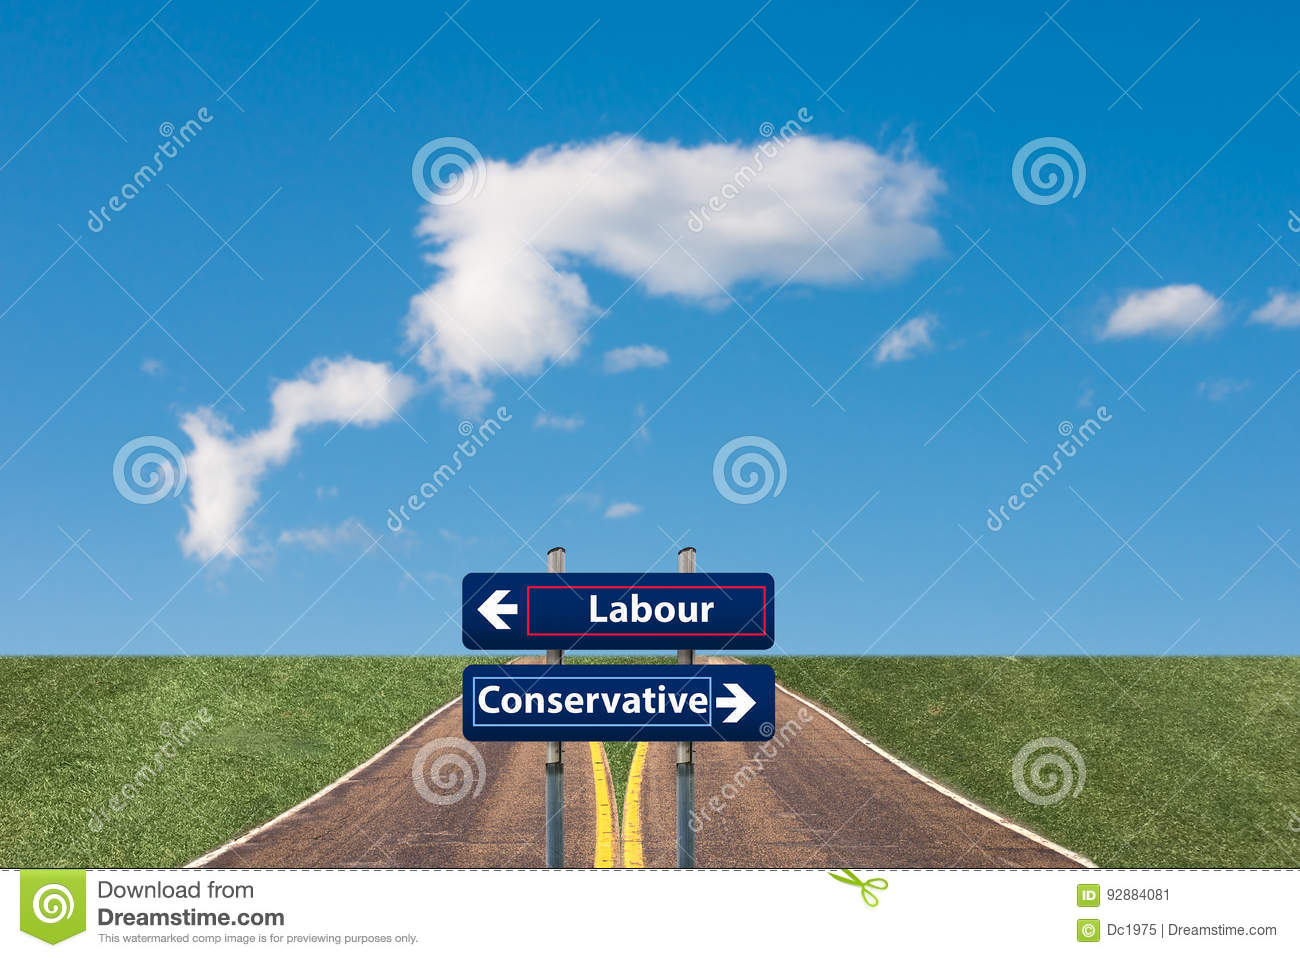 Two road signs pointing to a juncture between Labour and Conservative in the upcoming UK elections